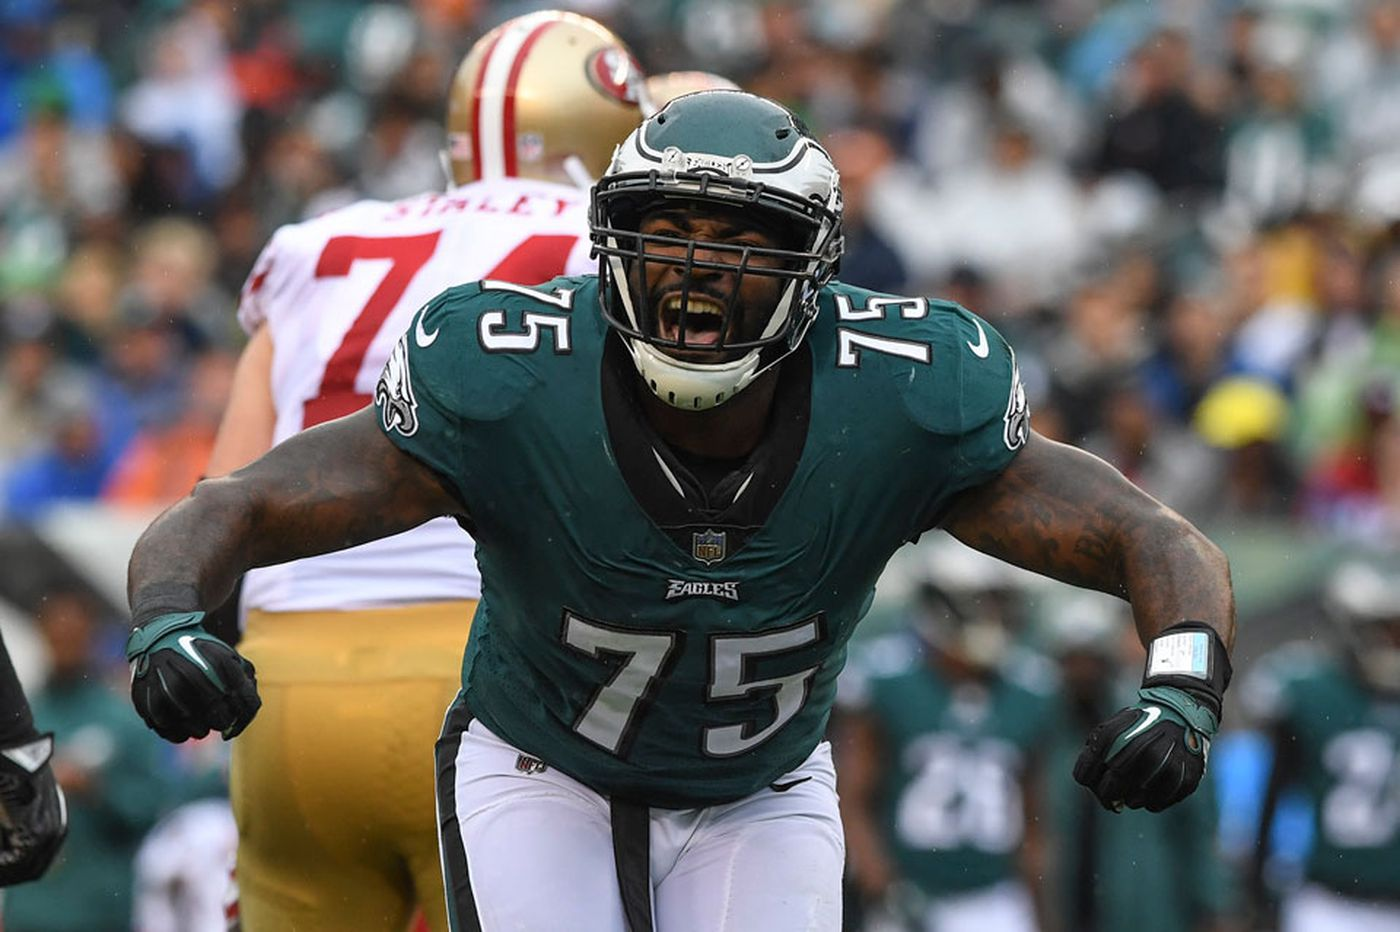 Eagles nearing deal to bring back defensive end Vinny Curry